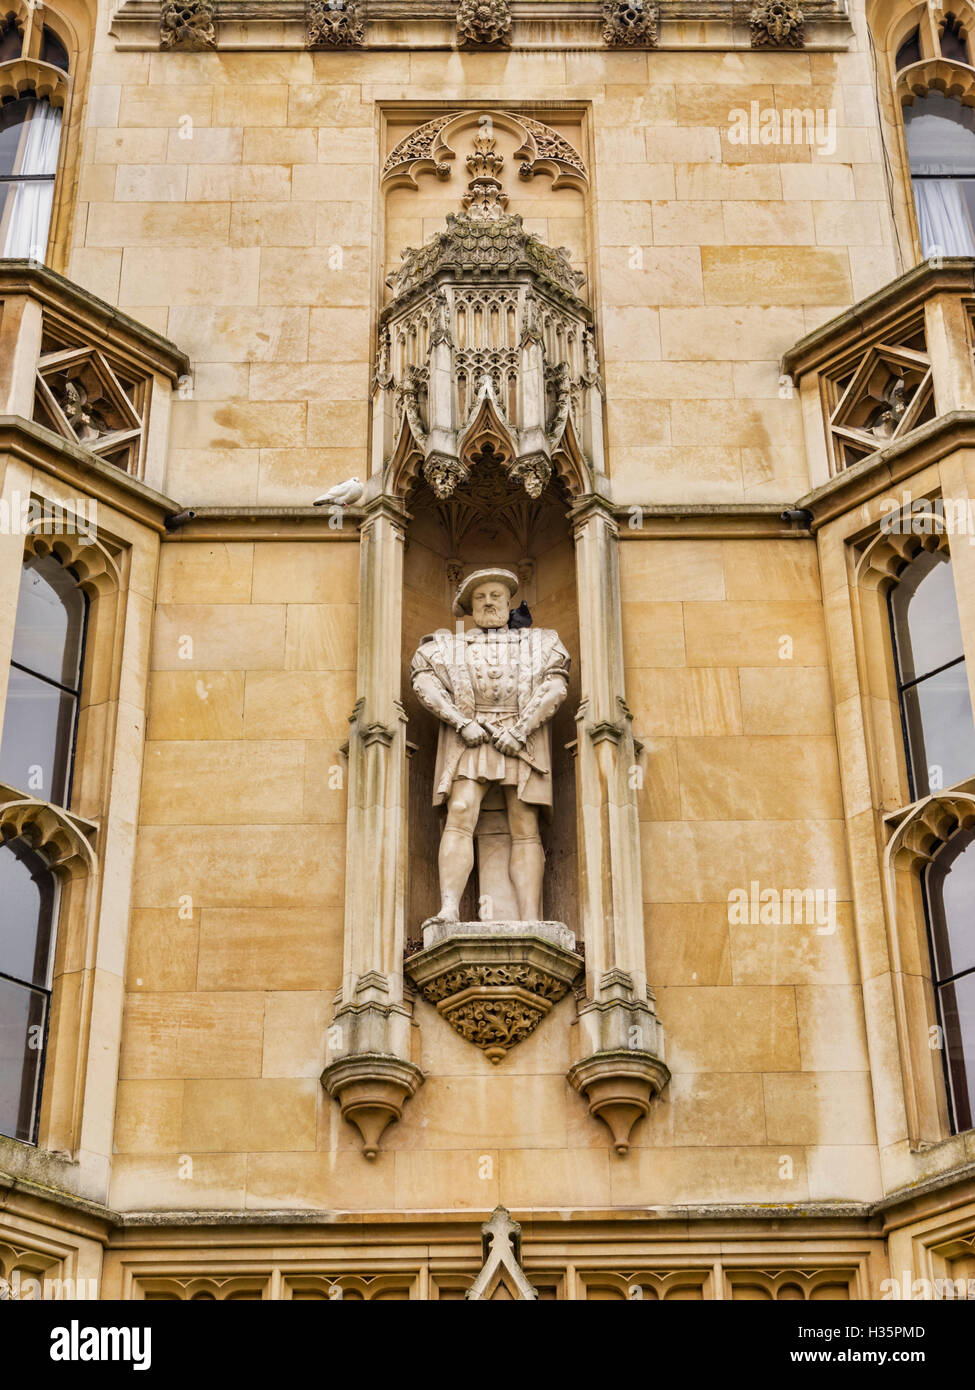 Statue of Henry VIII on the facade of King's College, Cambridge, England, UK - Stock Image